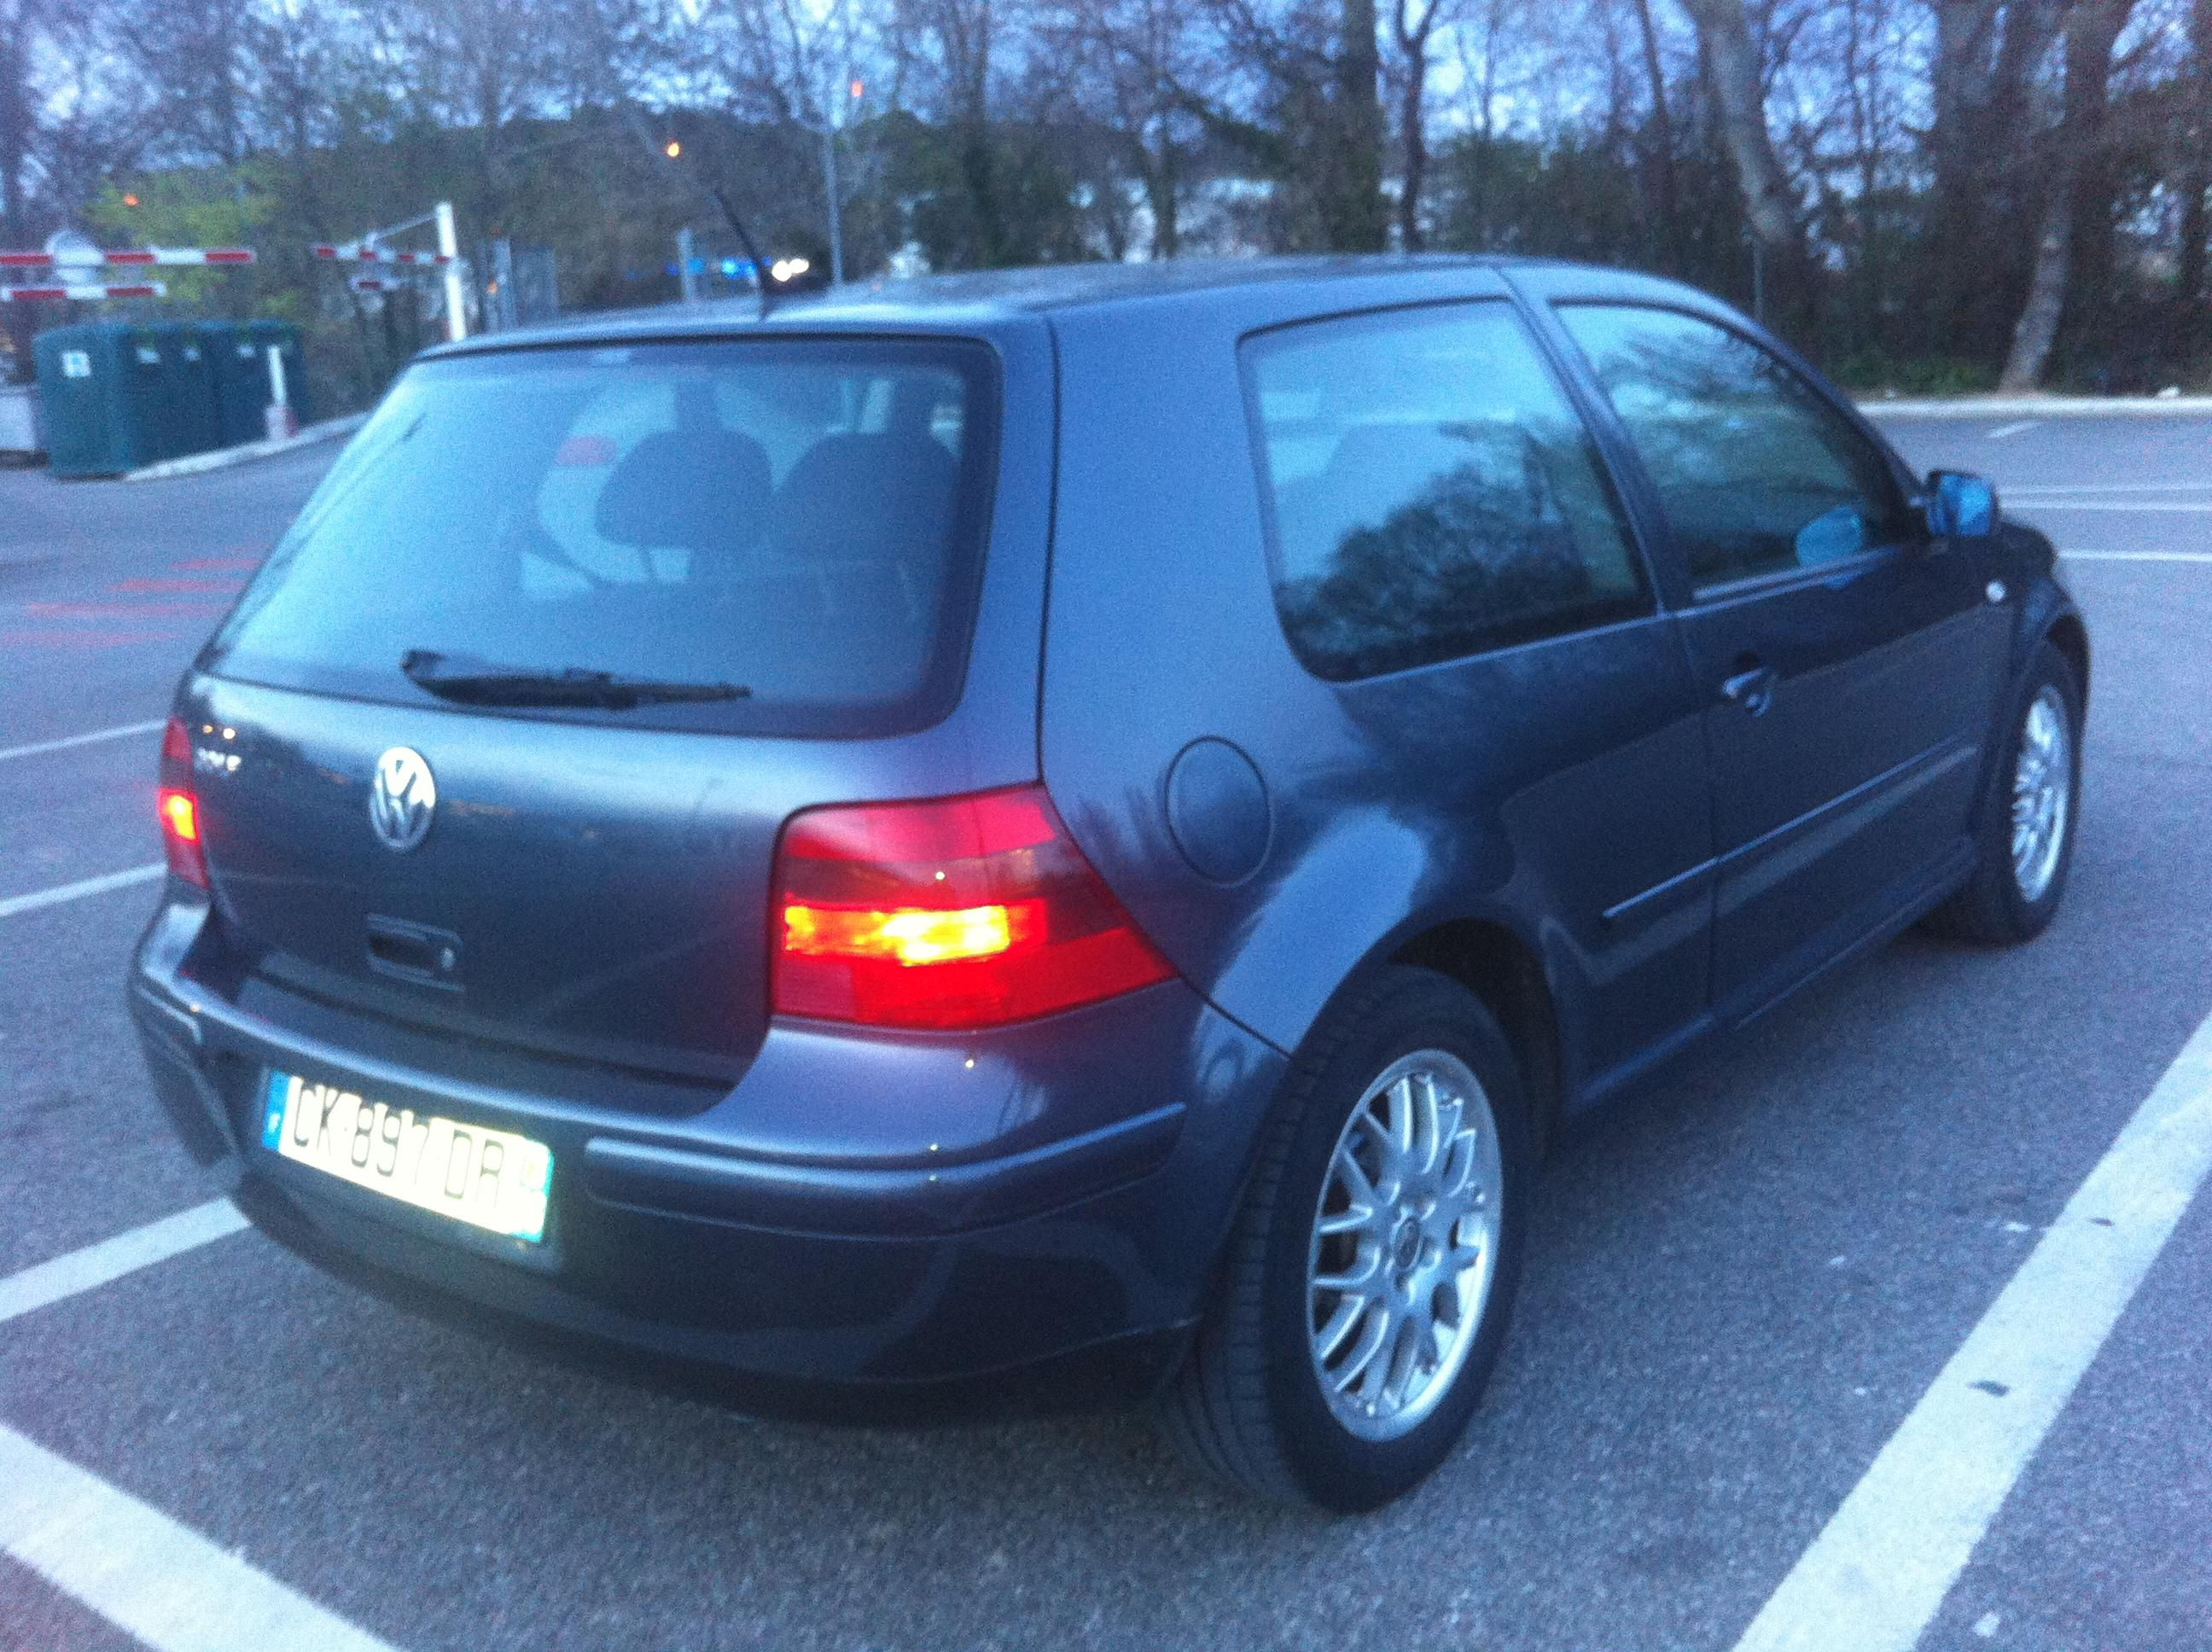 vw golf iv tdi 115 gti exclusive 2000 garage des golf iv tdi 115 forum volkswagen golf iv. Black Bedroom Furniture Sets. Home Design Ideas